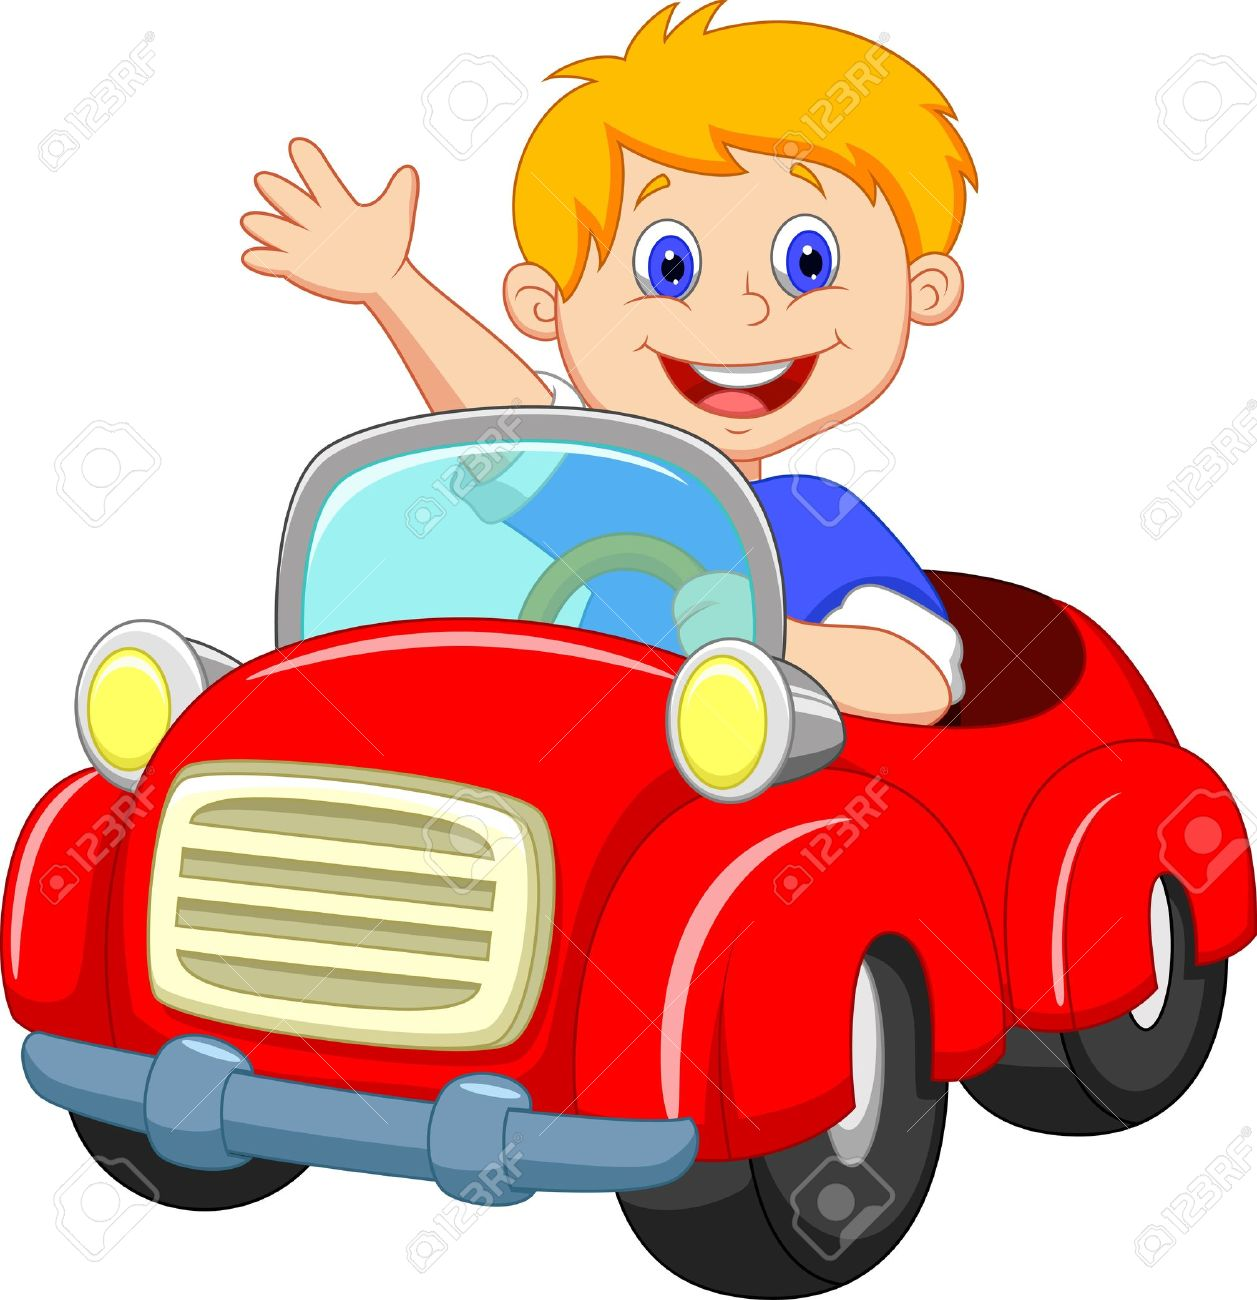 Red Racing Car Clipart in The Red Car Clipart